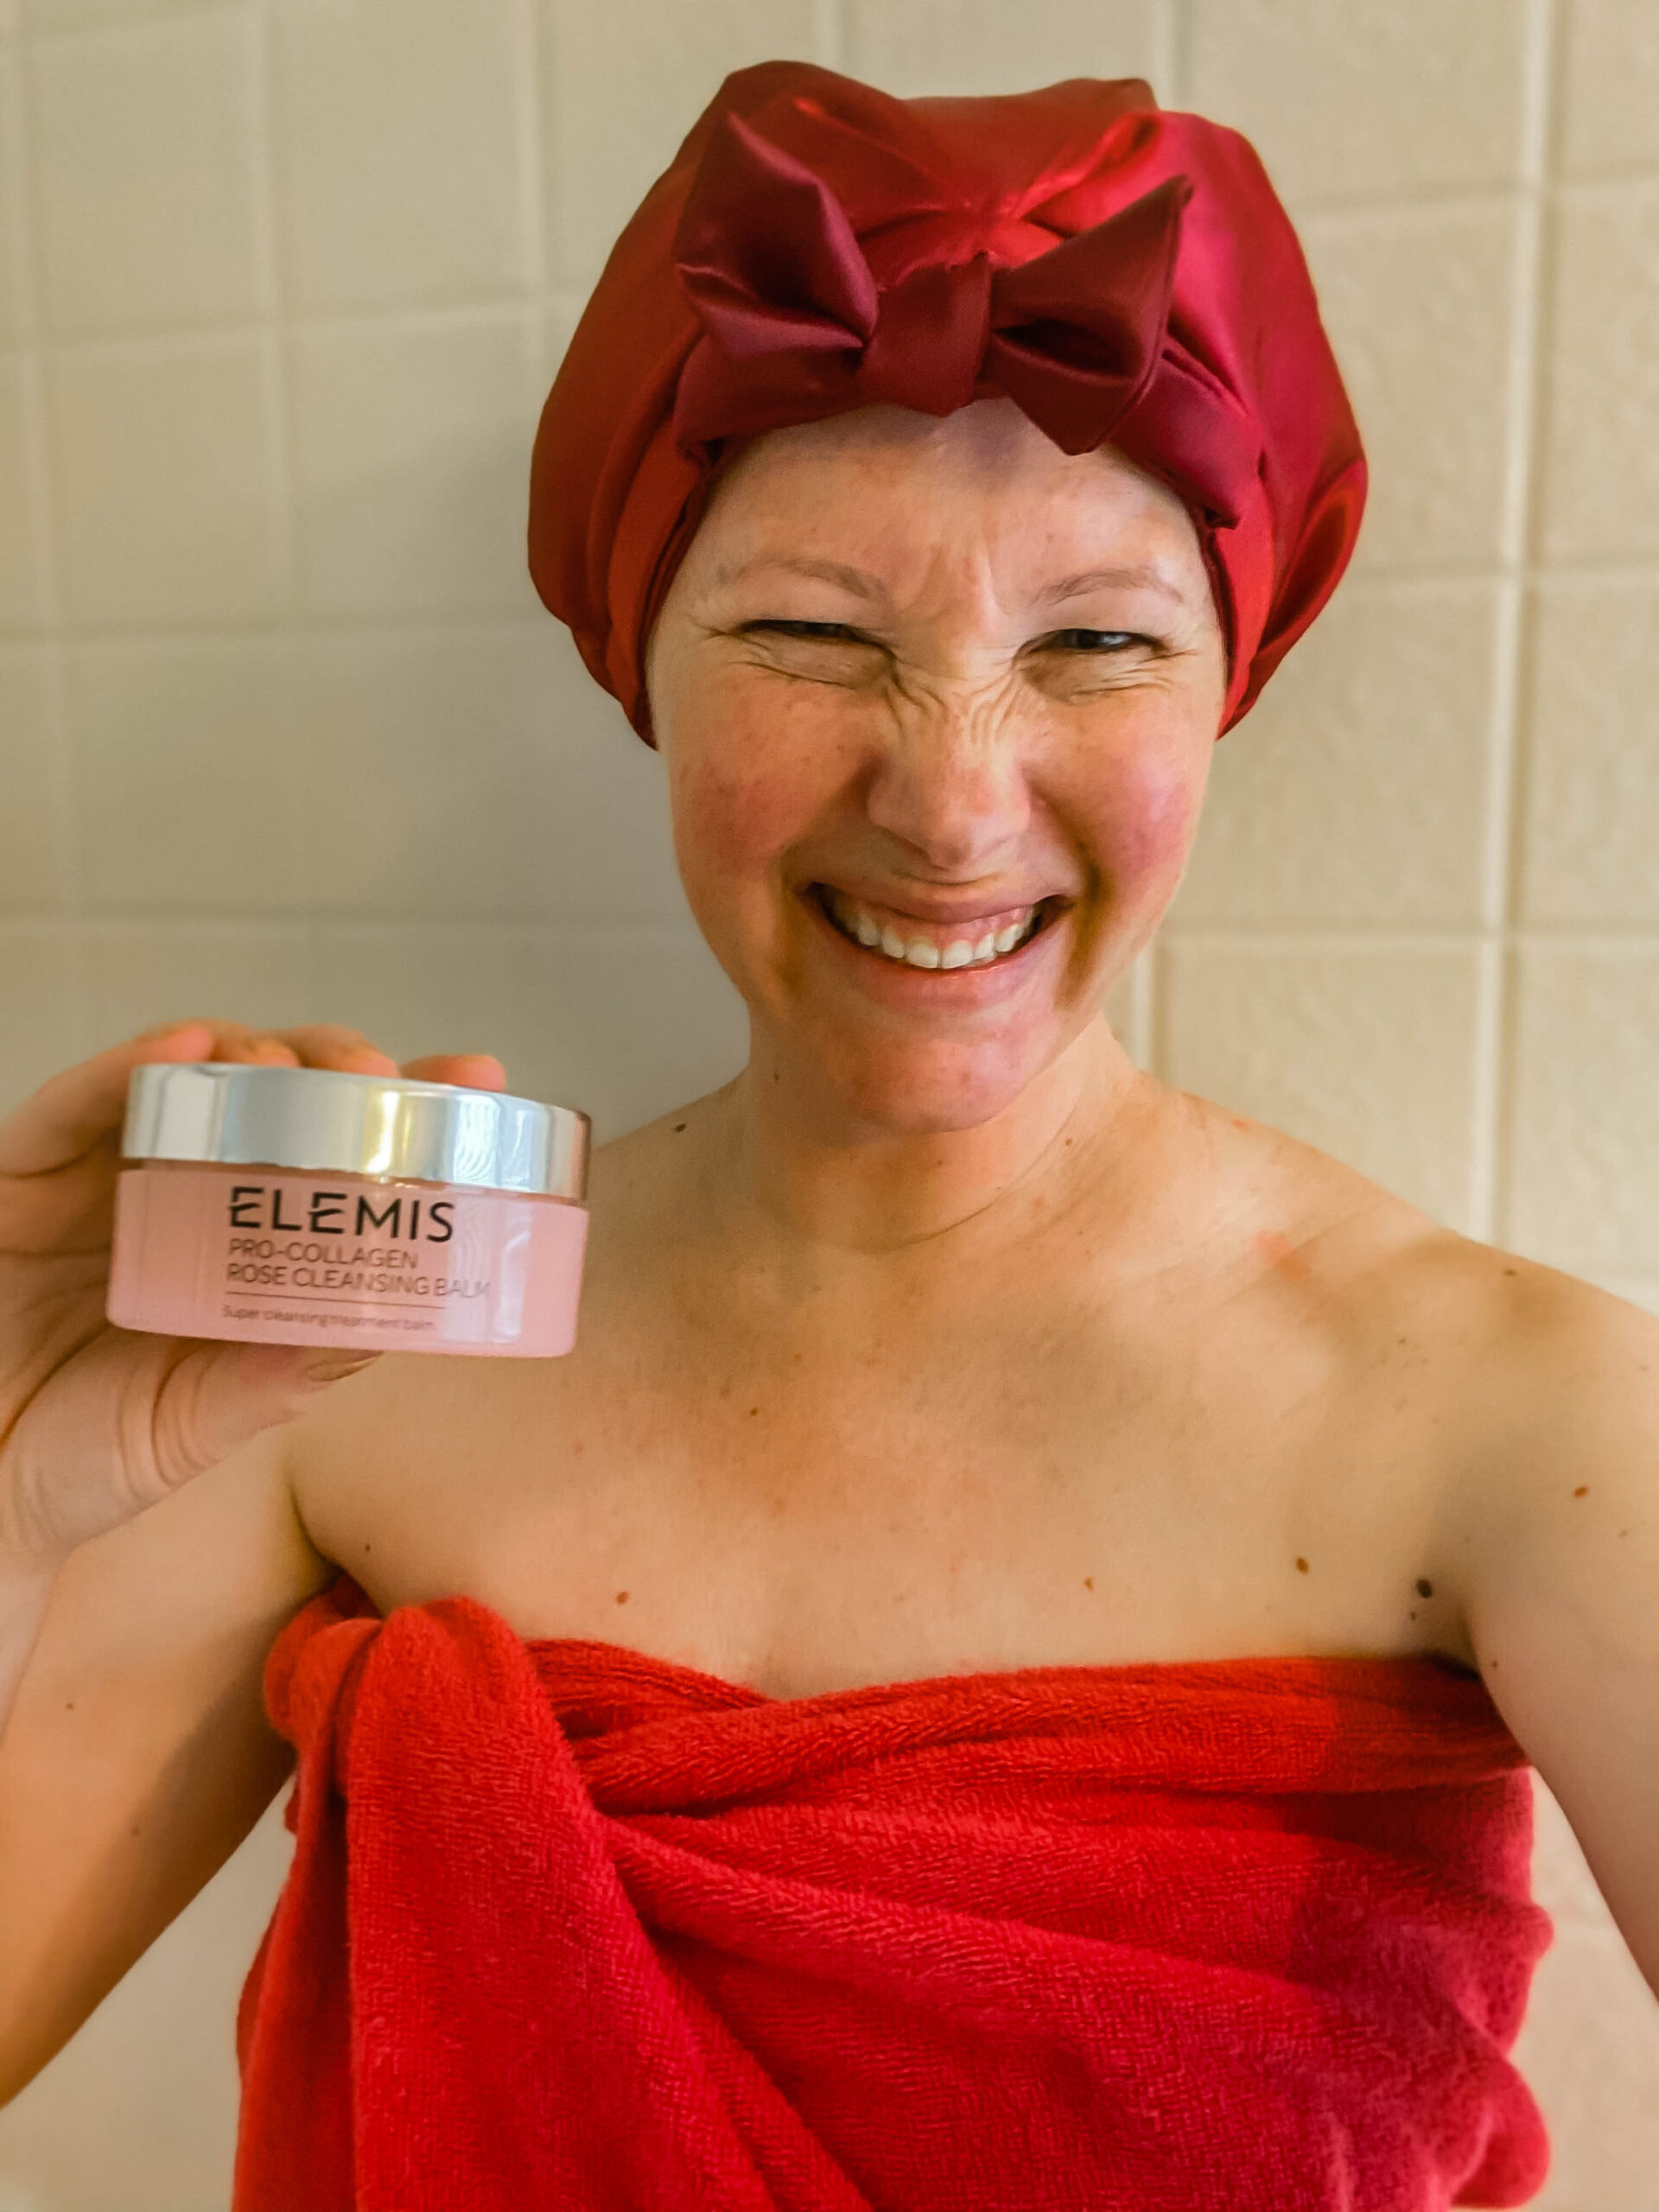 These are 5 must have items and practices to create a shower routine that lets you recharge and practice self care.......in a shorter period of time.